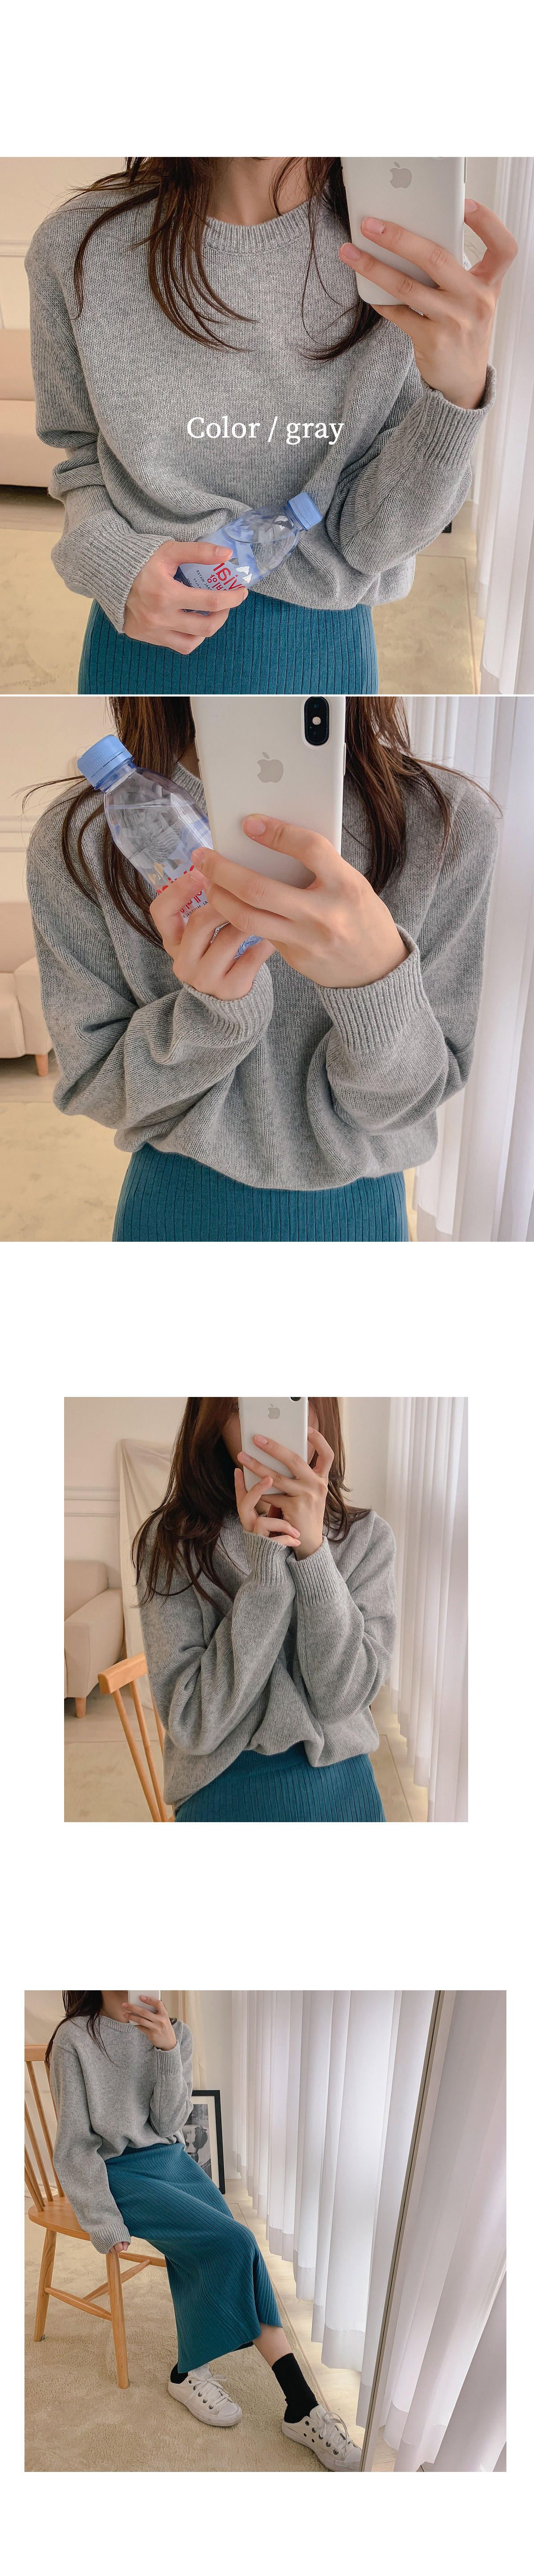 Save wool round knit _H